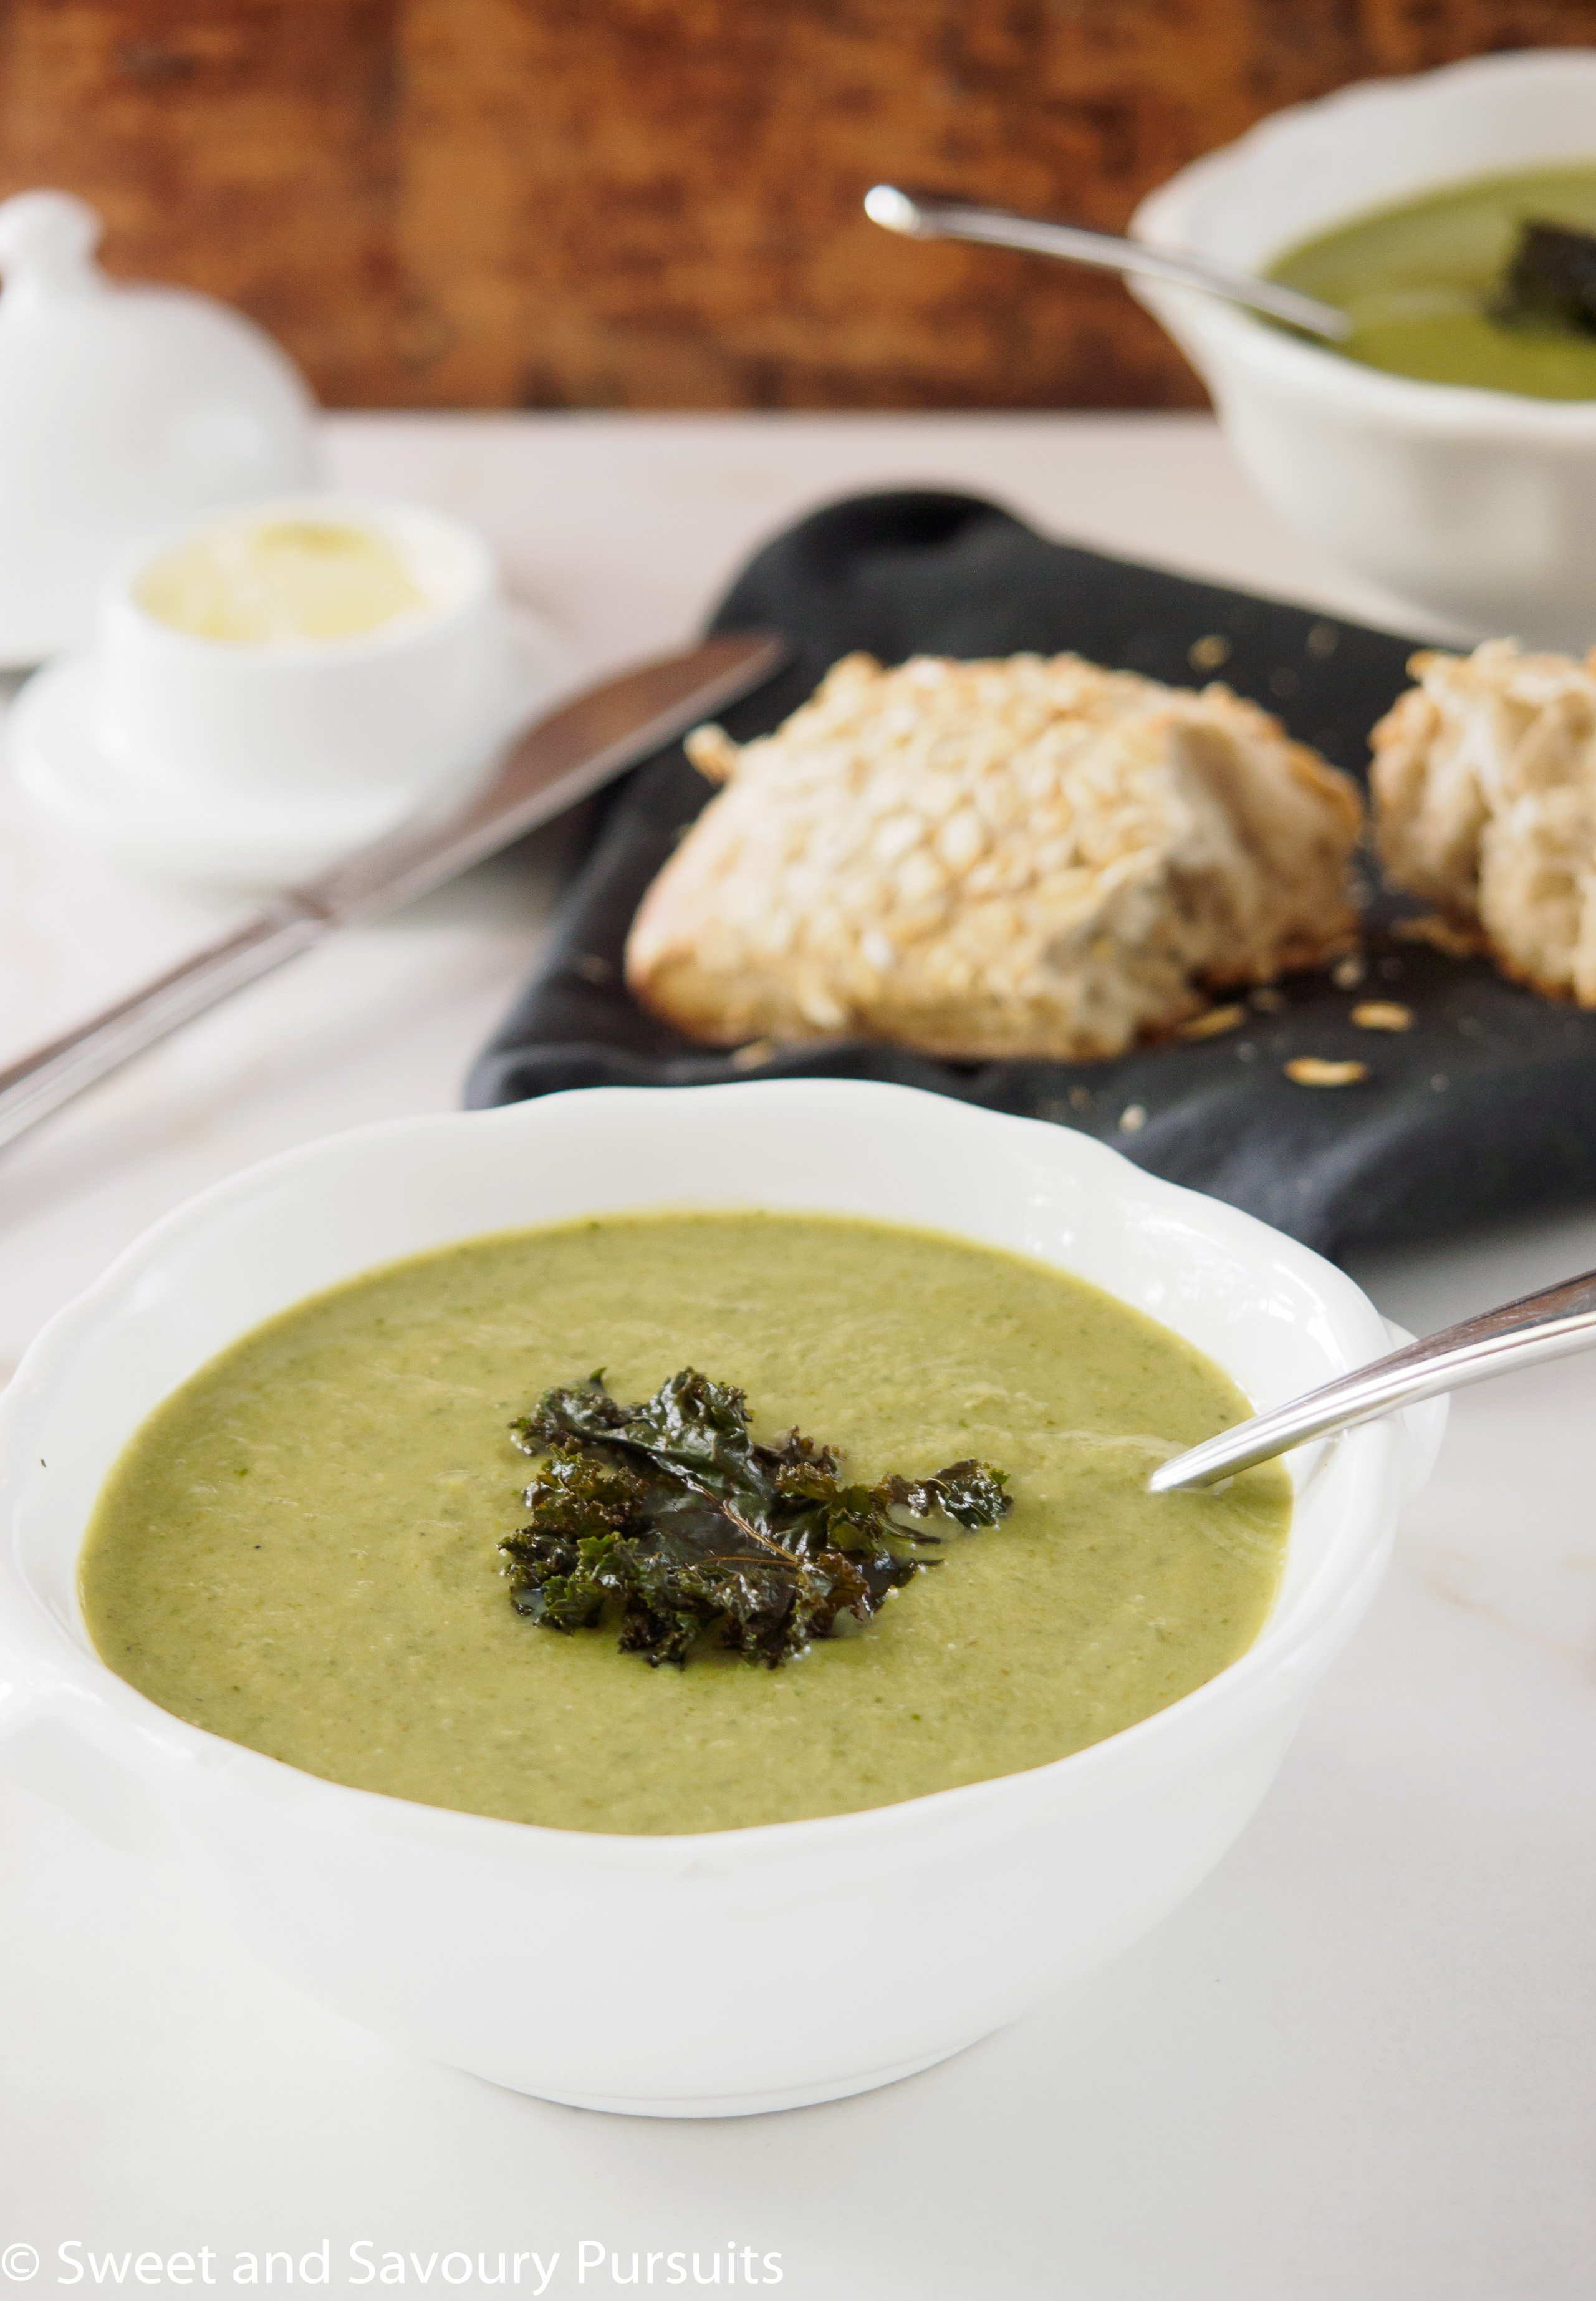 This Cauliflower, Kale and Leek Soup is nutritious, delicious and simple to make. It's an excellent soup for warming you up on those chilly days.